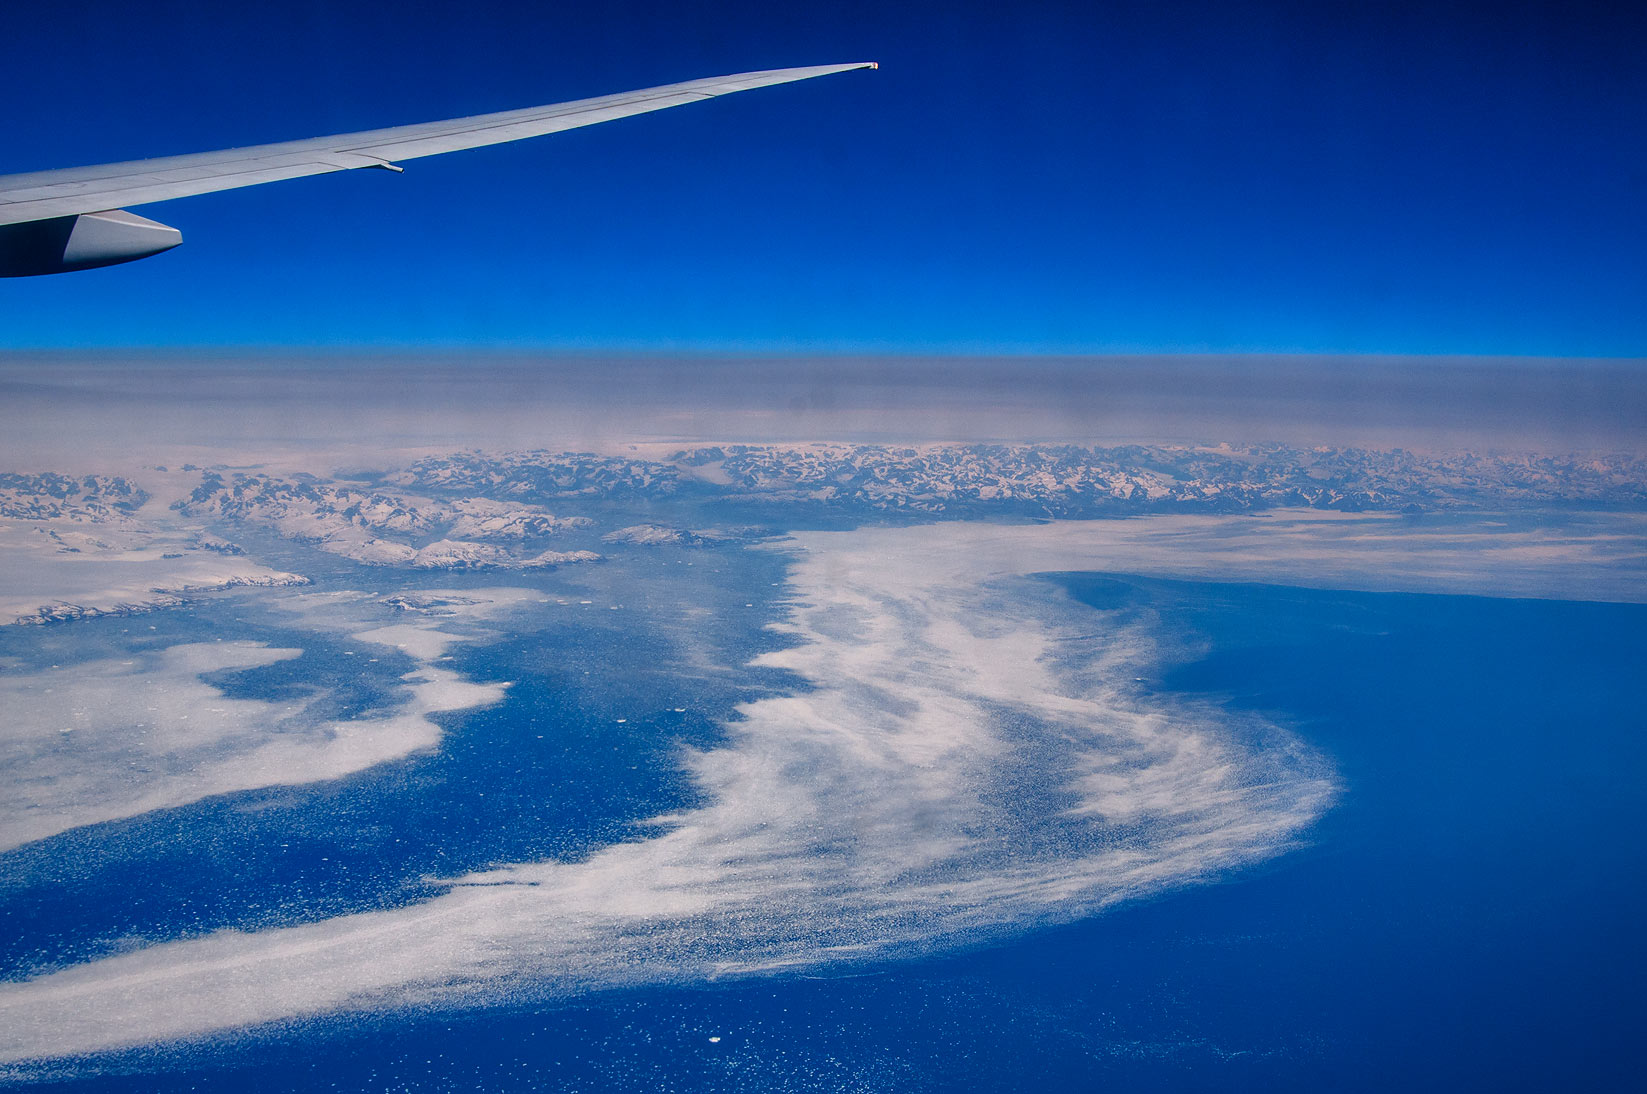 Approaching south-east coast of Greenland near...Frankfurt, Germany to Toronto, Canada